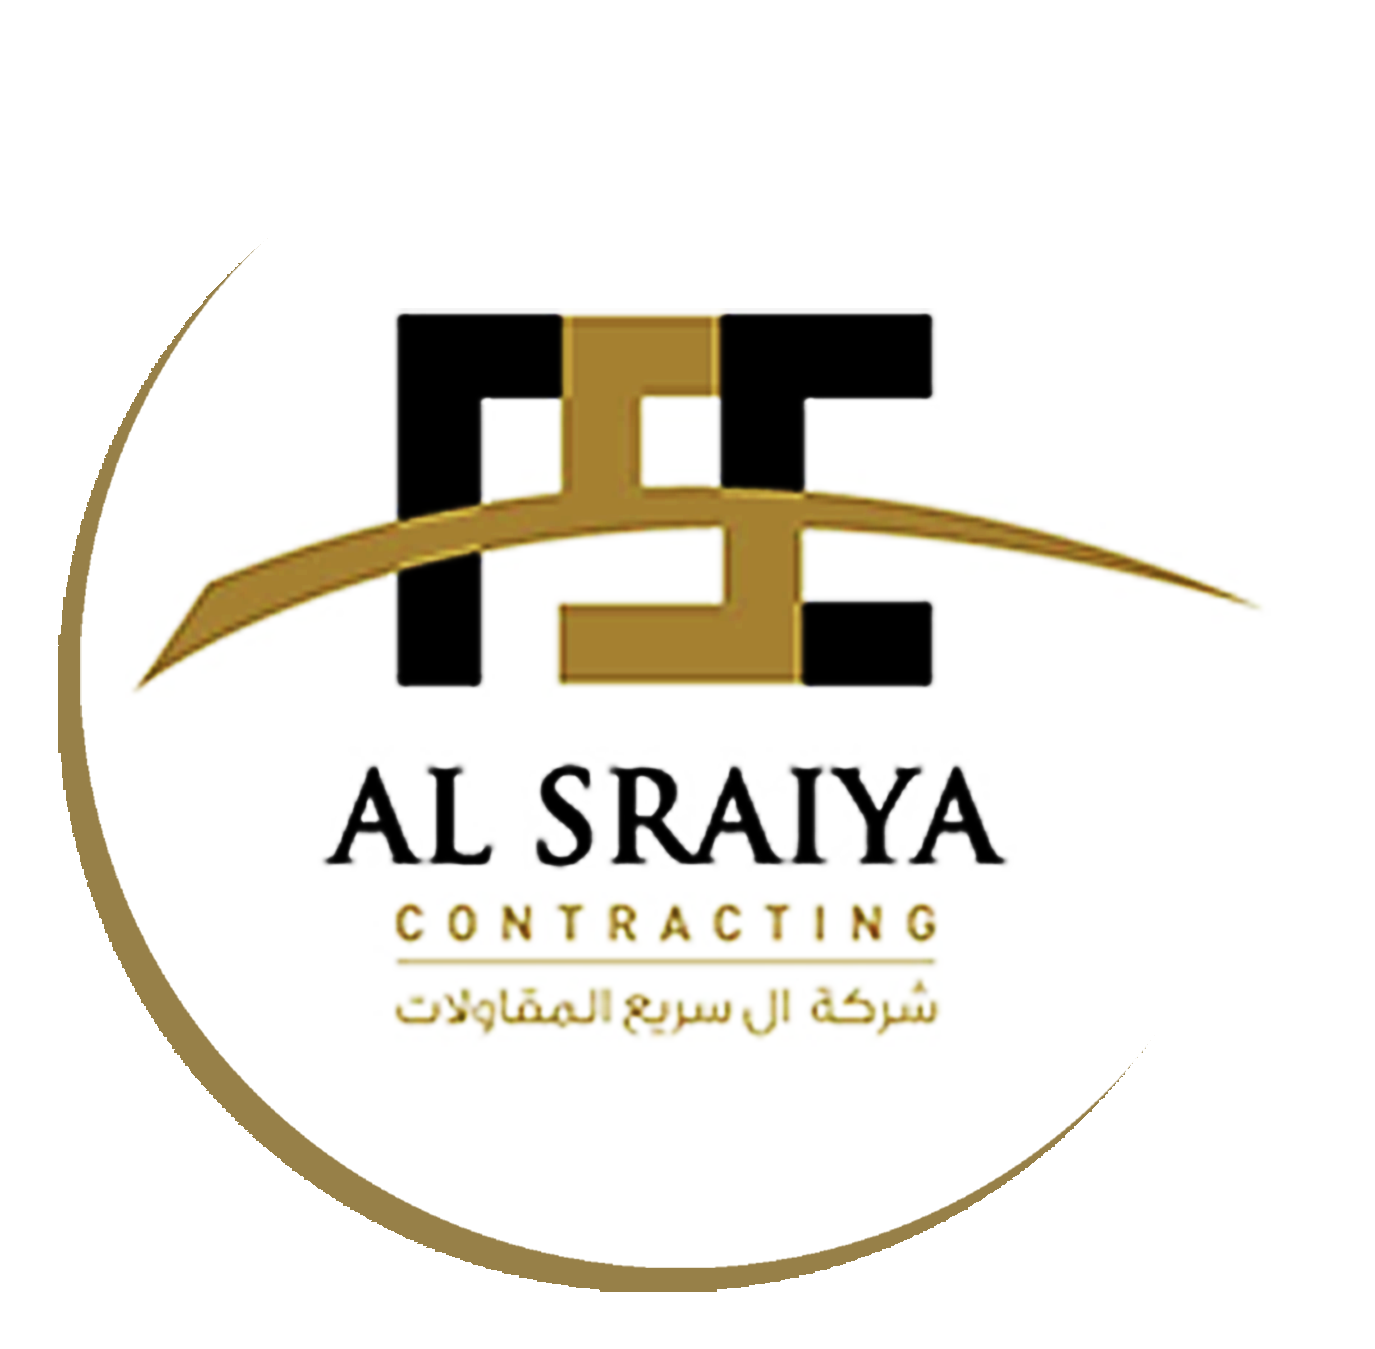 Alsraiya Engineering